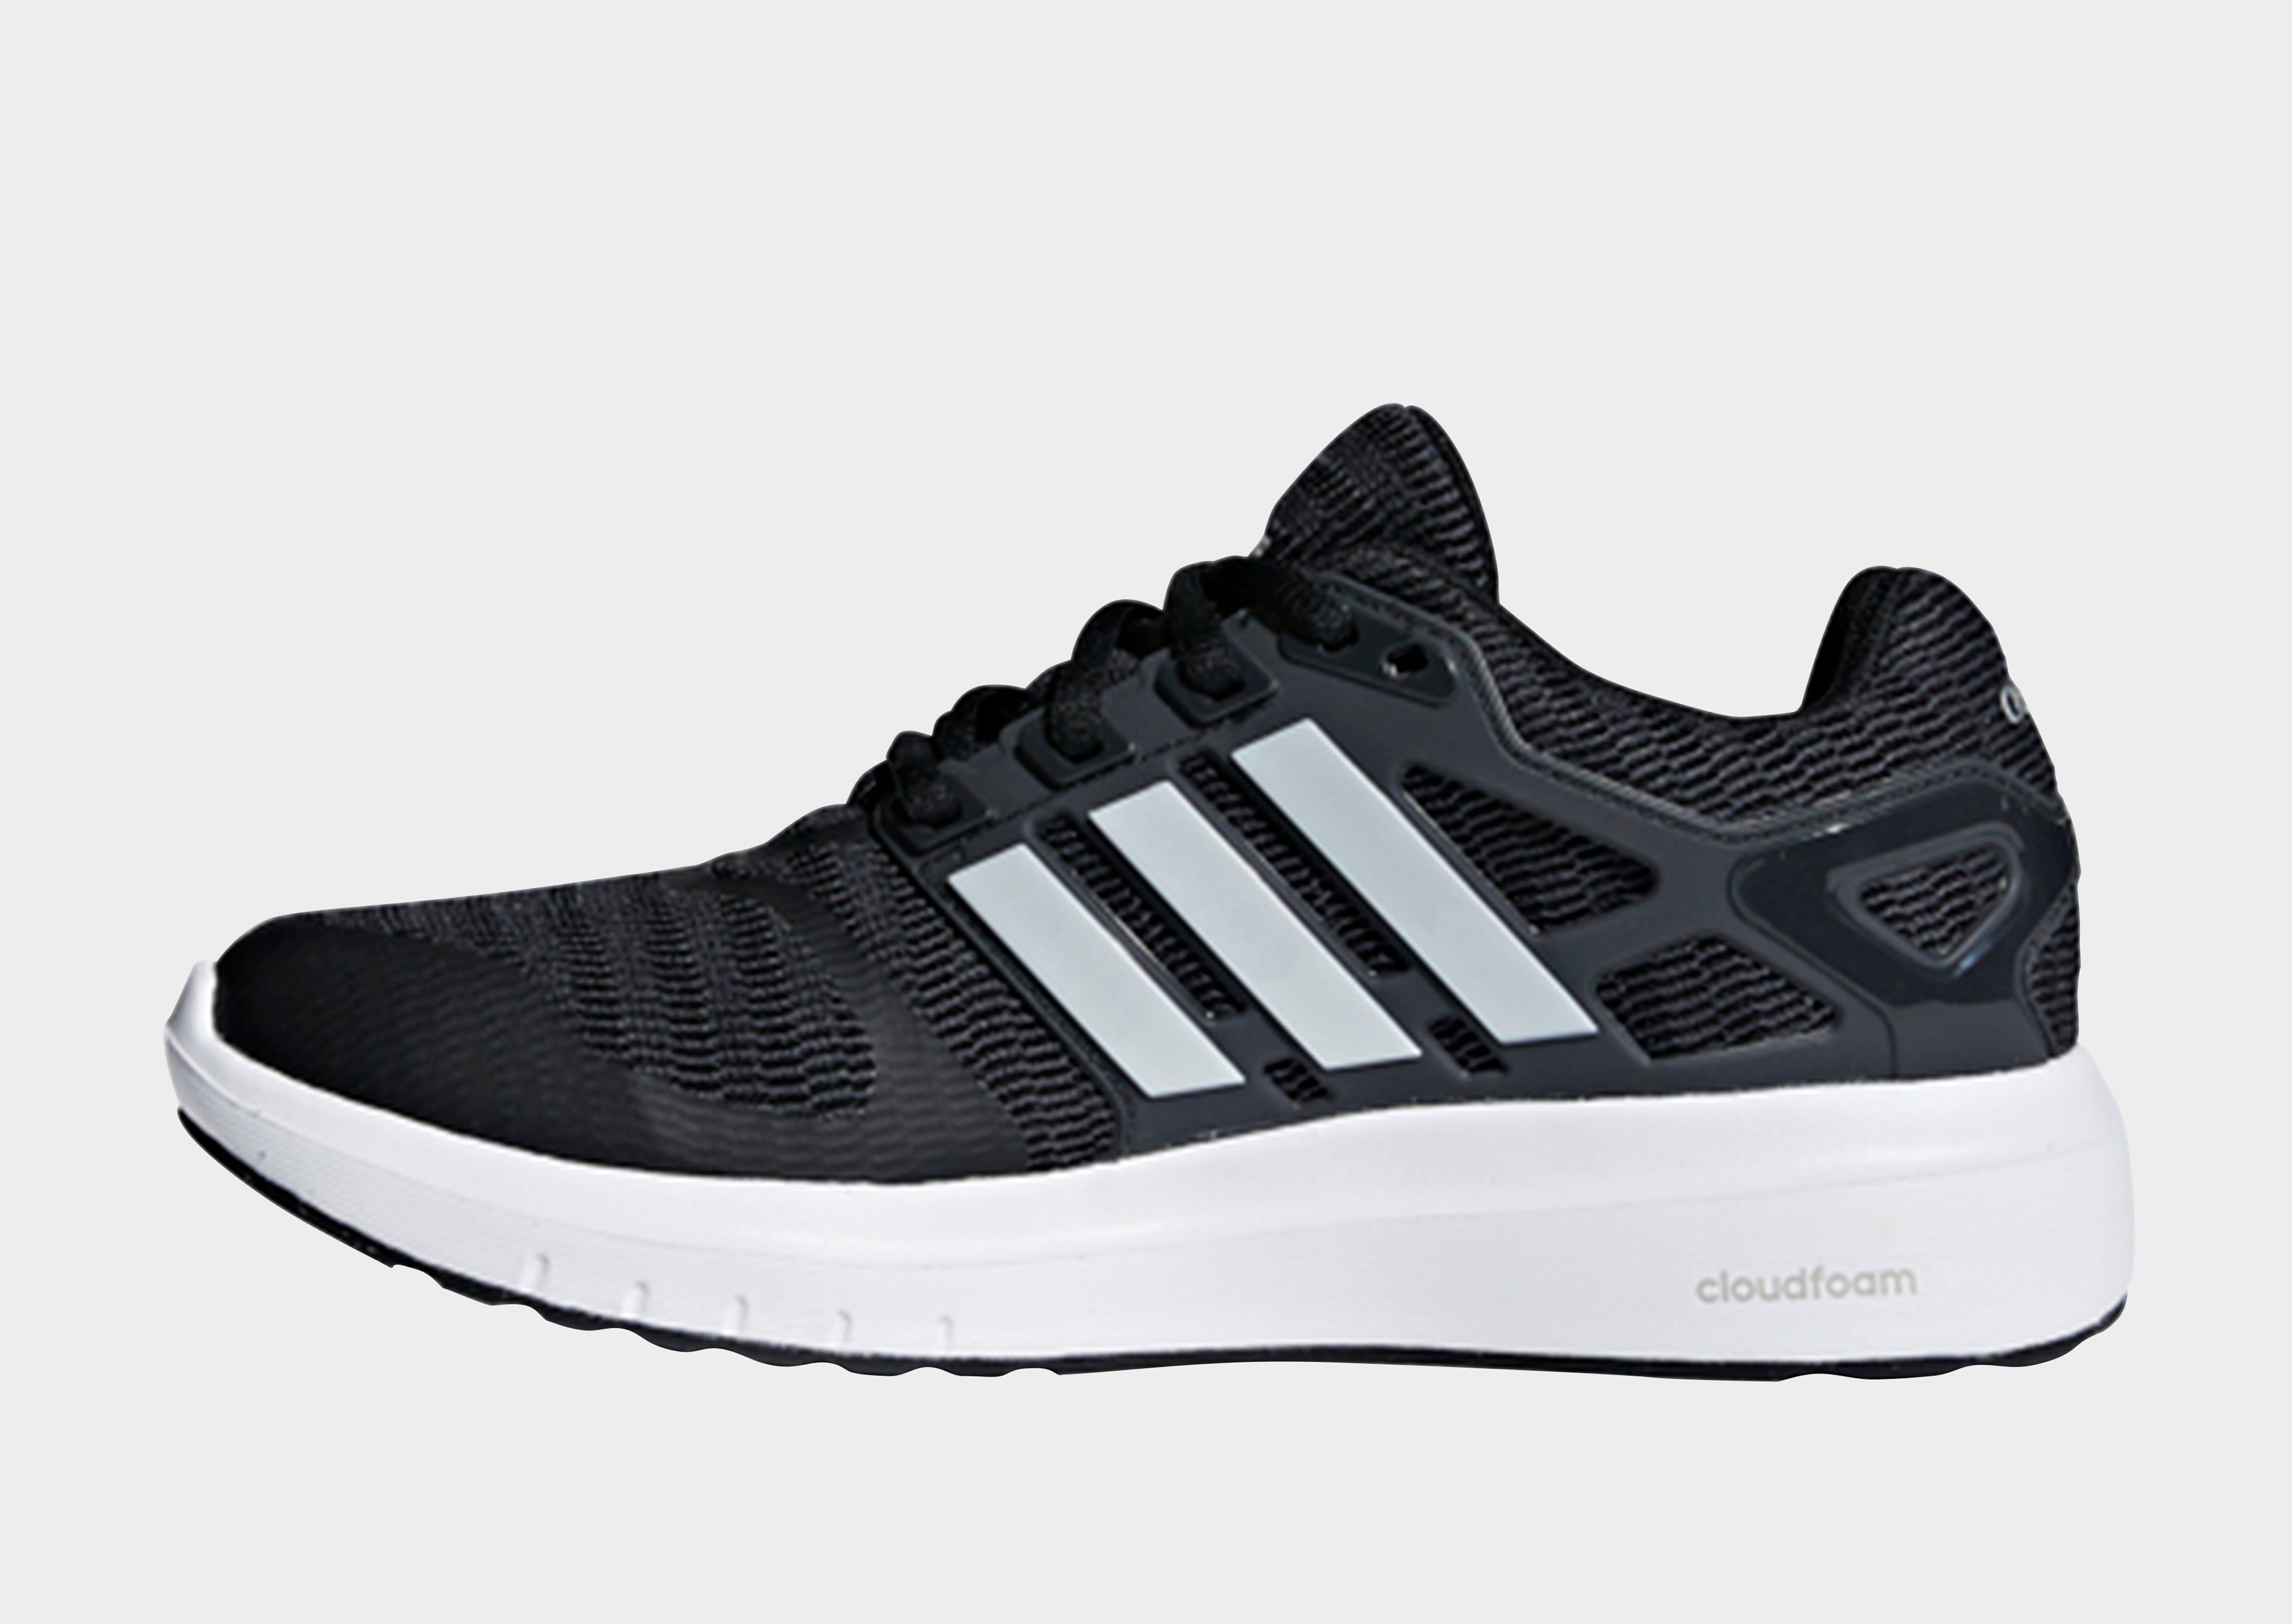 new style 8091c a0154 ADIDAS Energy Cloud V Shoes   JD Sports